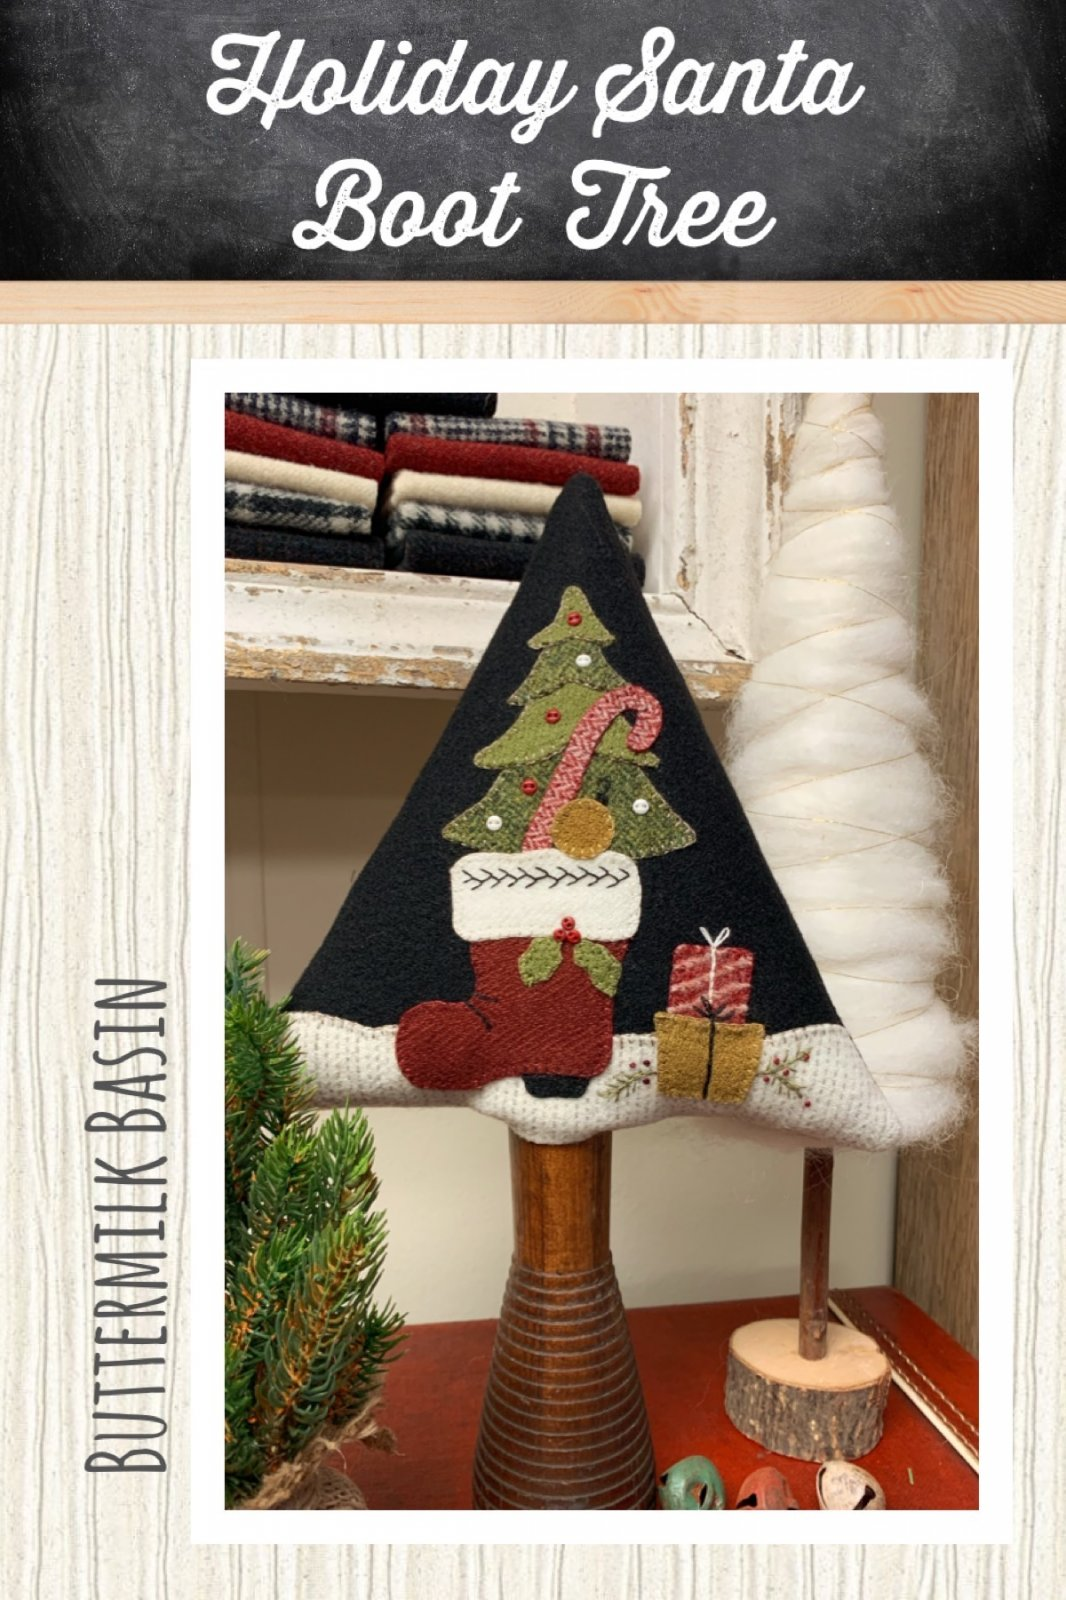 Holiday Santa Boot Tree *Kit & Pattern